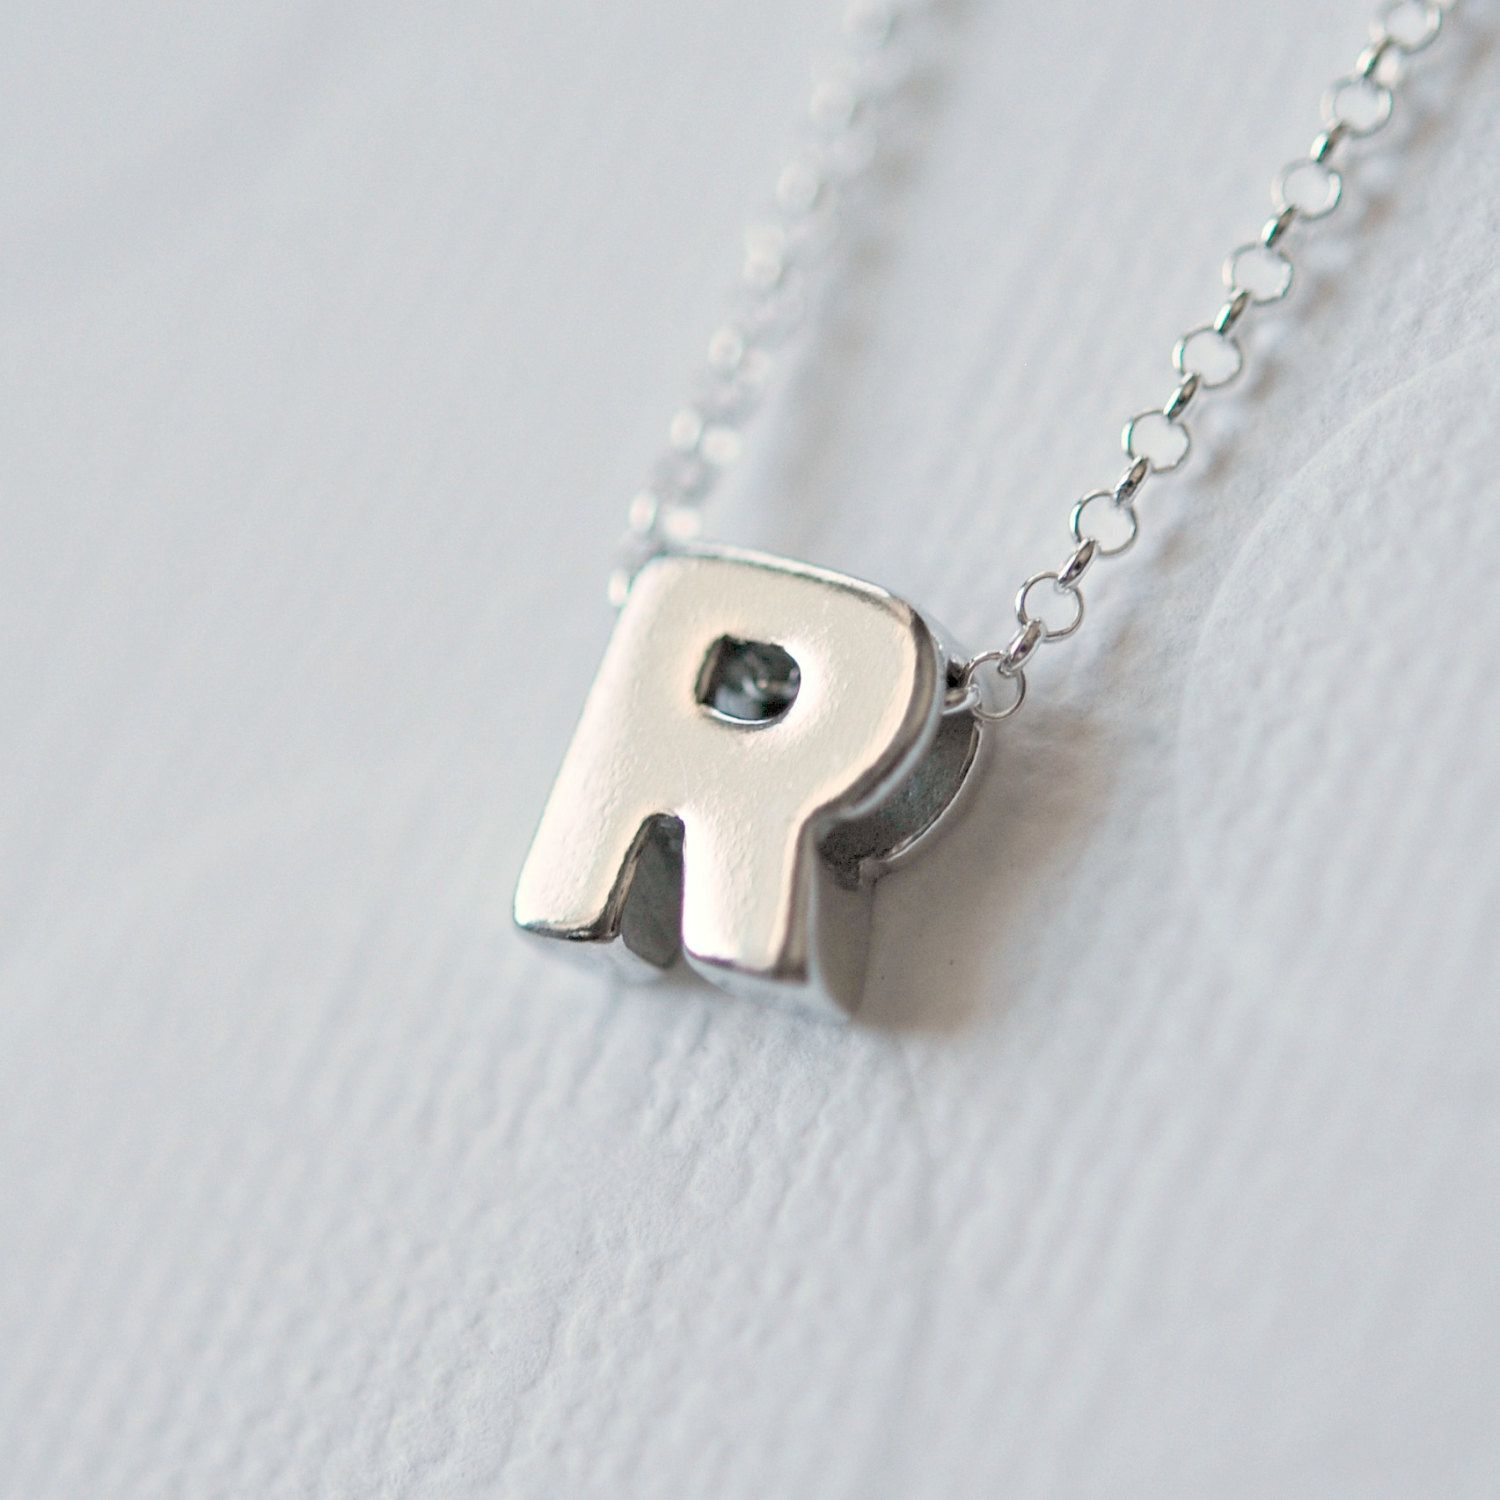 pendant custom gold tag productdetail products by personalized initial small billy necklace smalllgoldtagnecklace letter